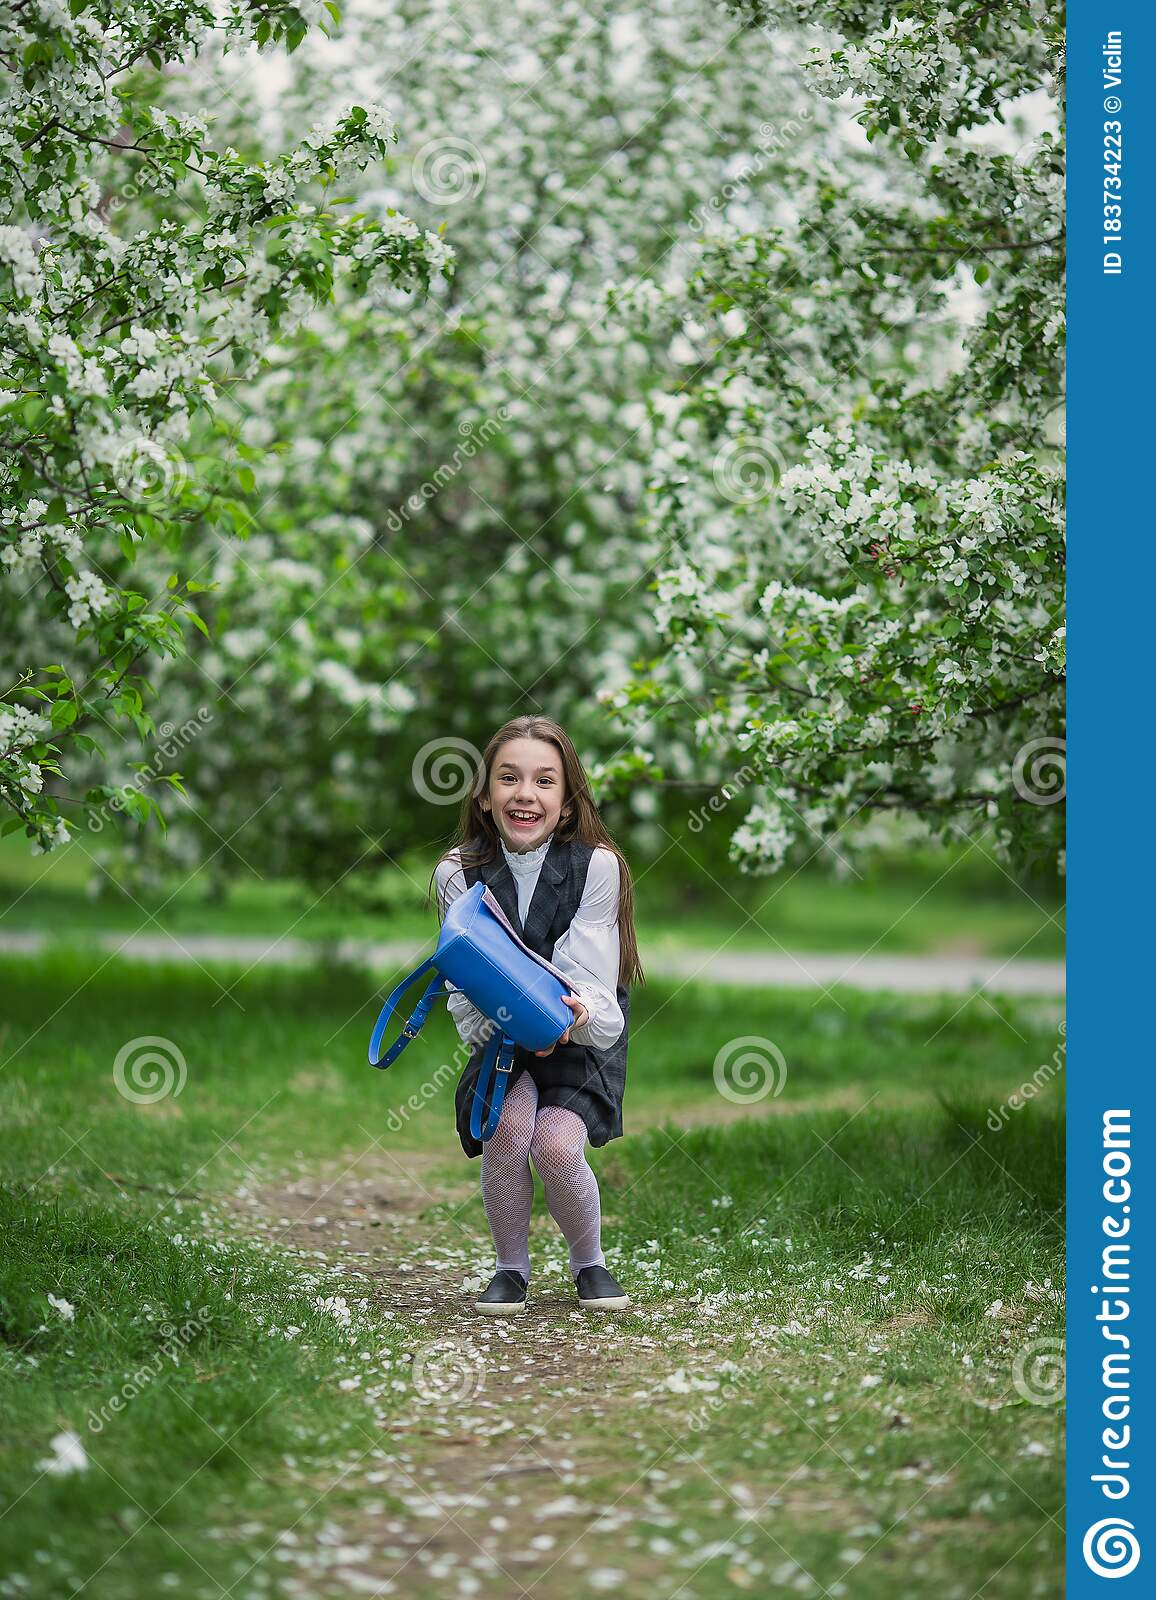 Yay Vacation Happy Girl In School Uniform With School Bag The Concept Of Pre School Education Stock Image Image Of Holiday Celebration 183734223